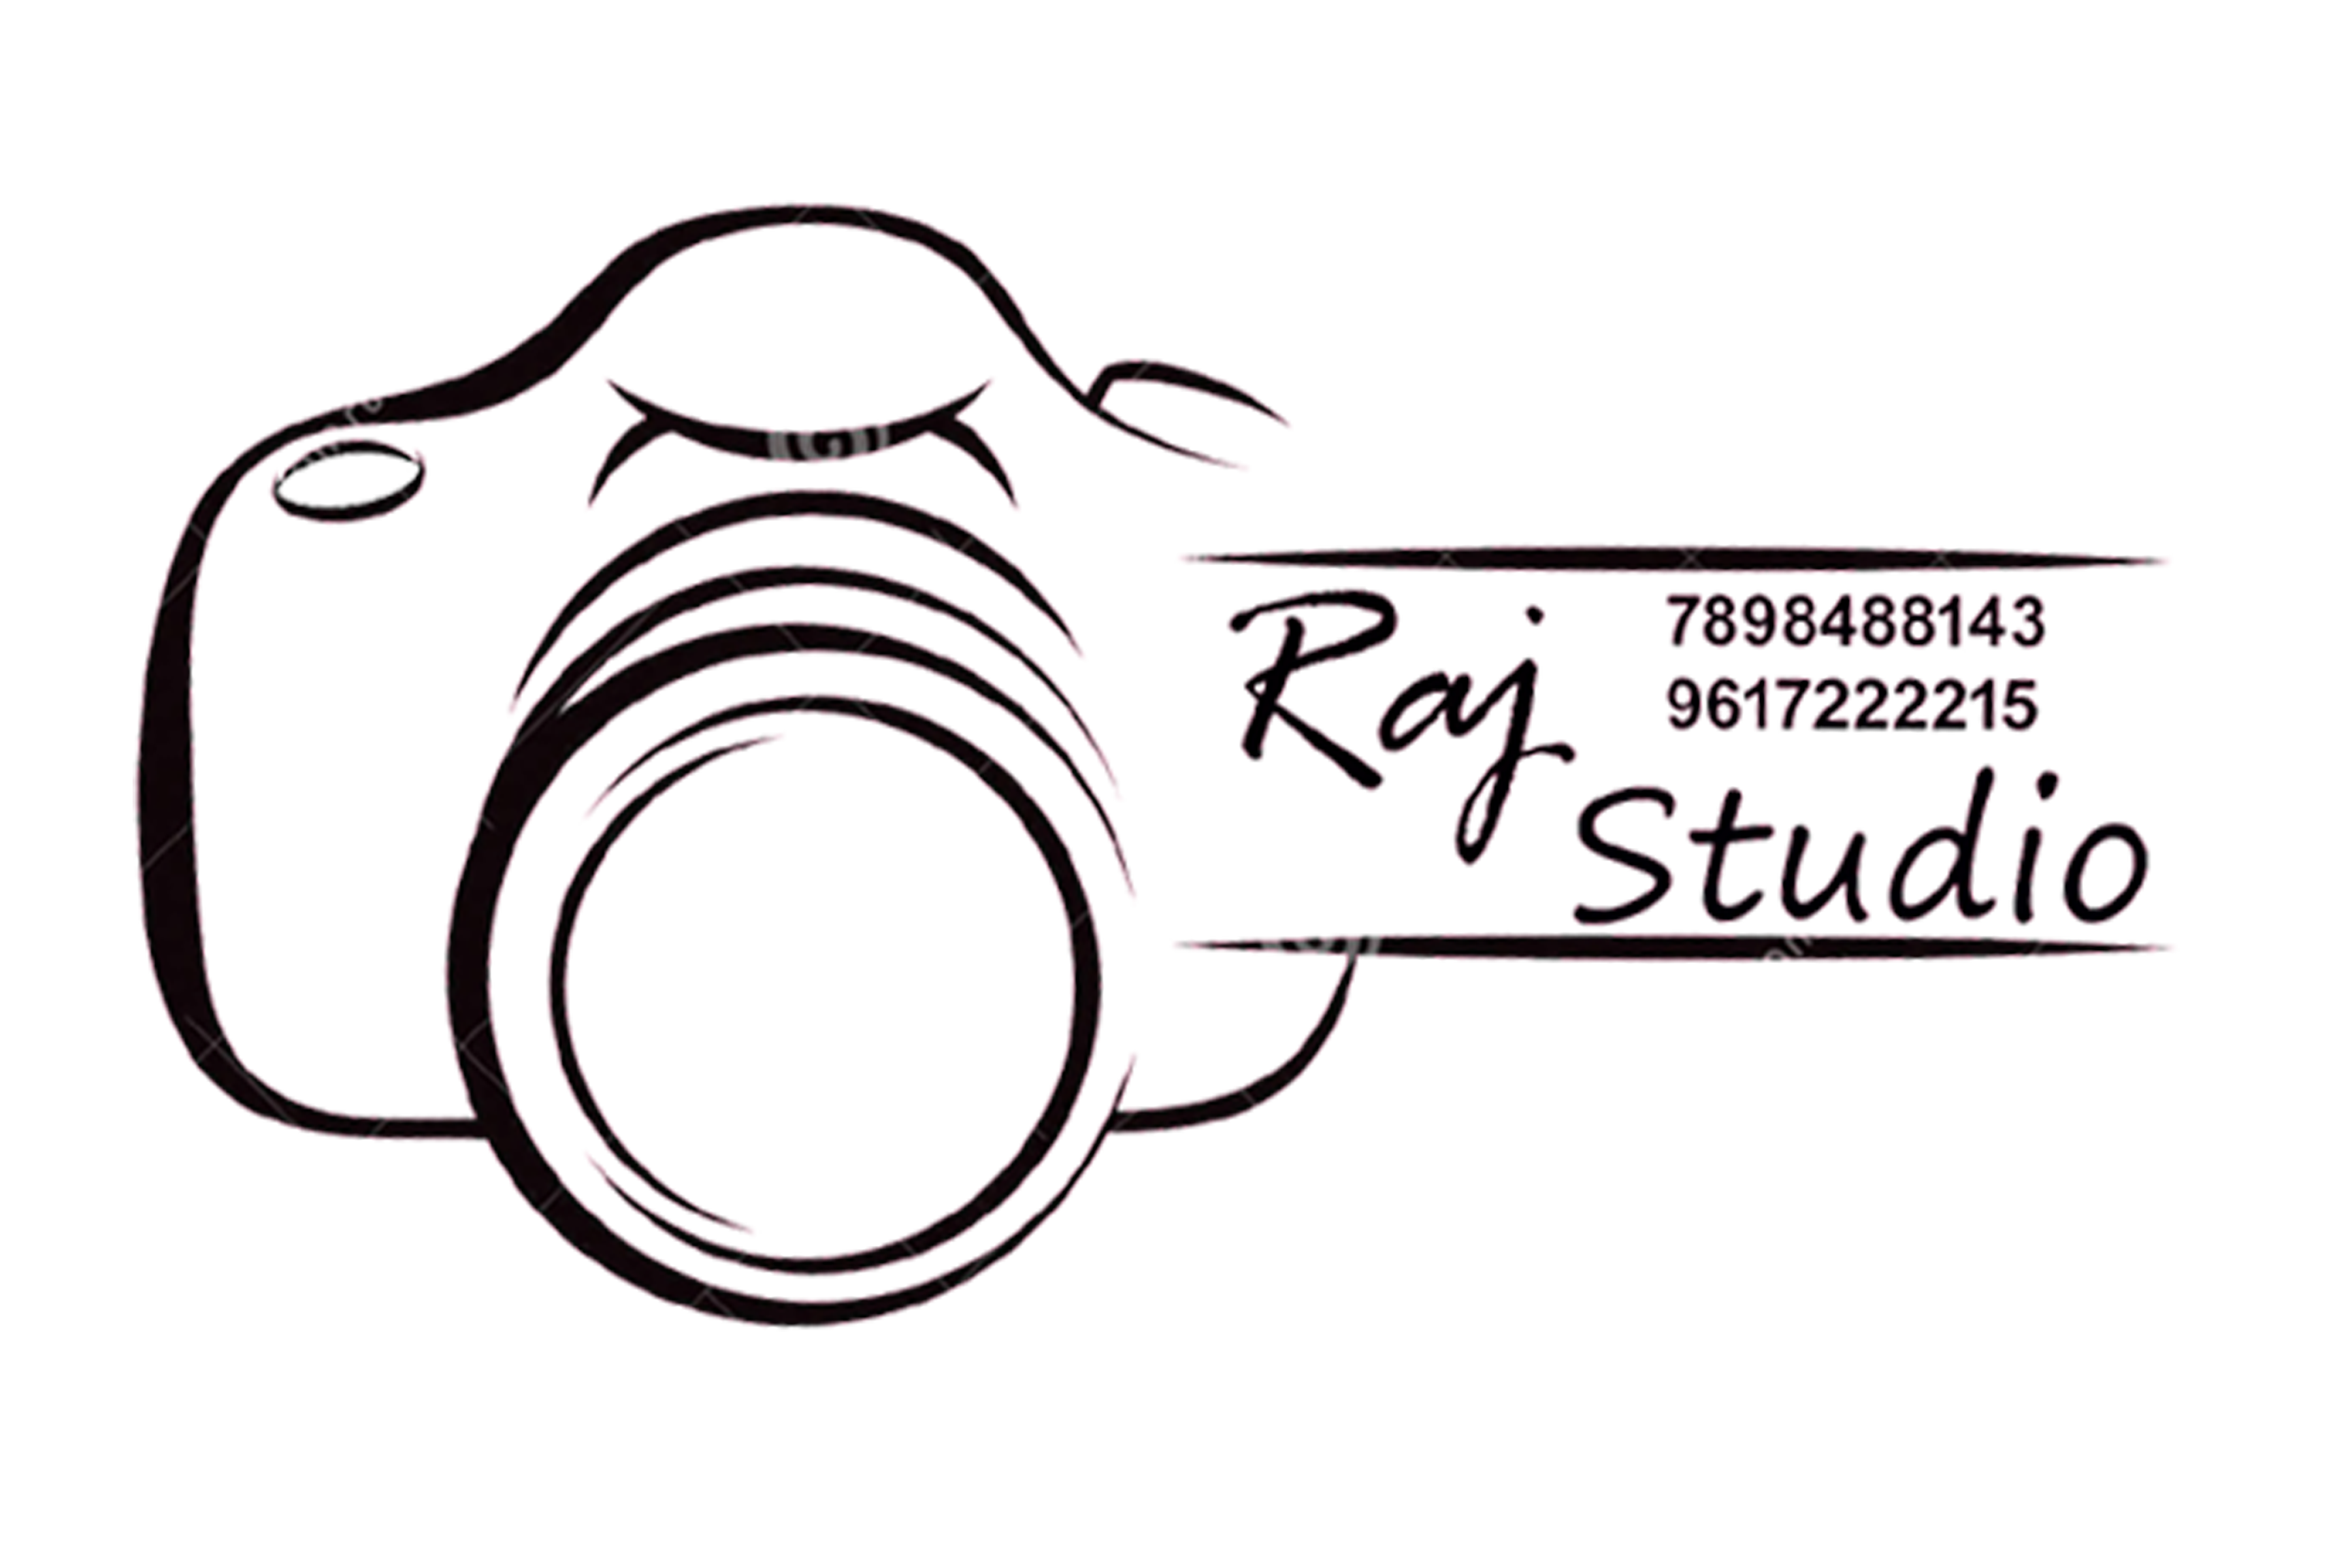 Logo Photography Studio Picsart Android PNG File HD PNG Image